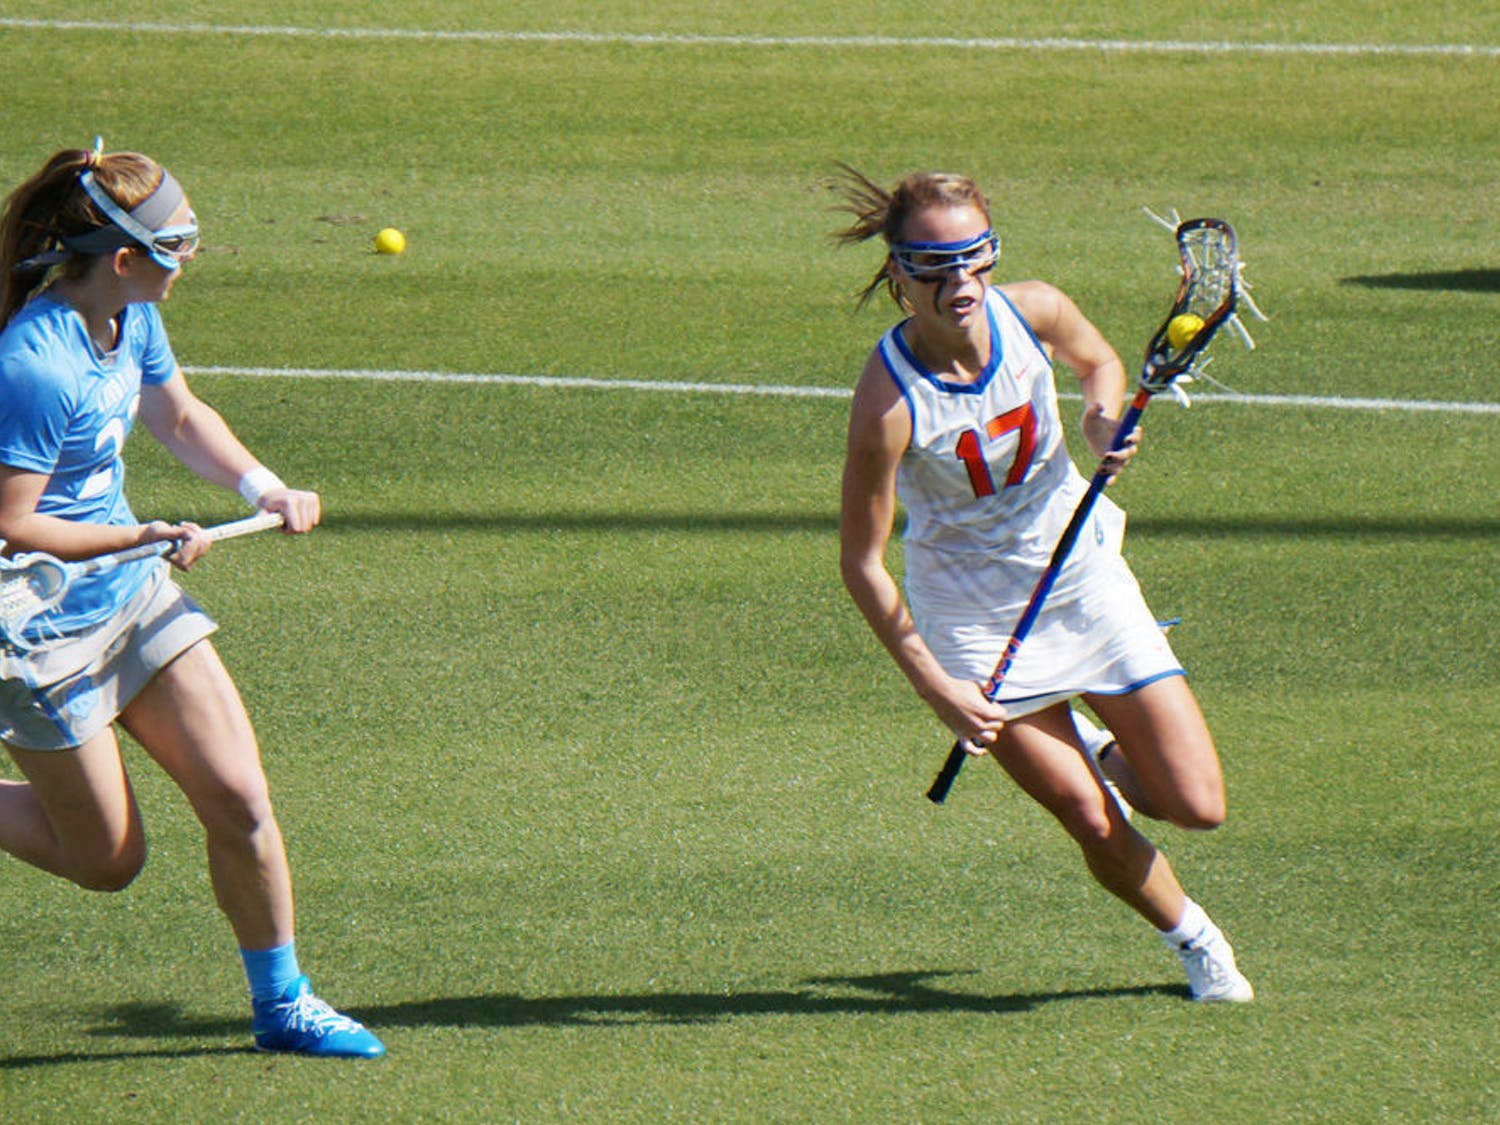 Mollie Stevens (17) runs down the field during UF lacrosse's season-opening loss to UNC on Feb. 7, 2015 at Donald R. Dizney Stadium.